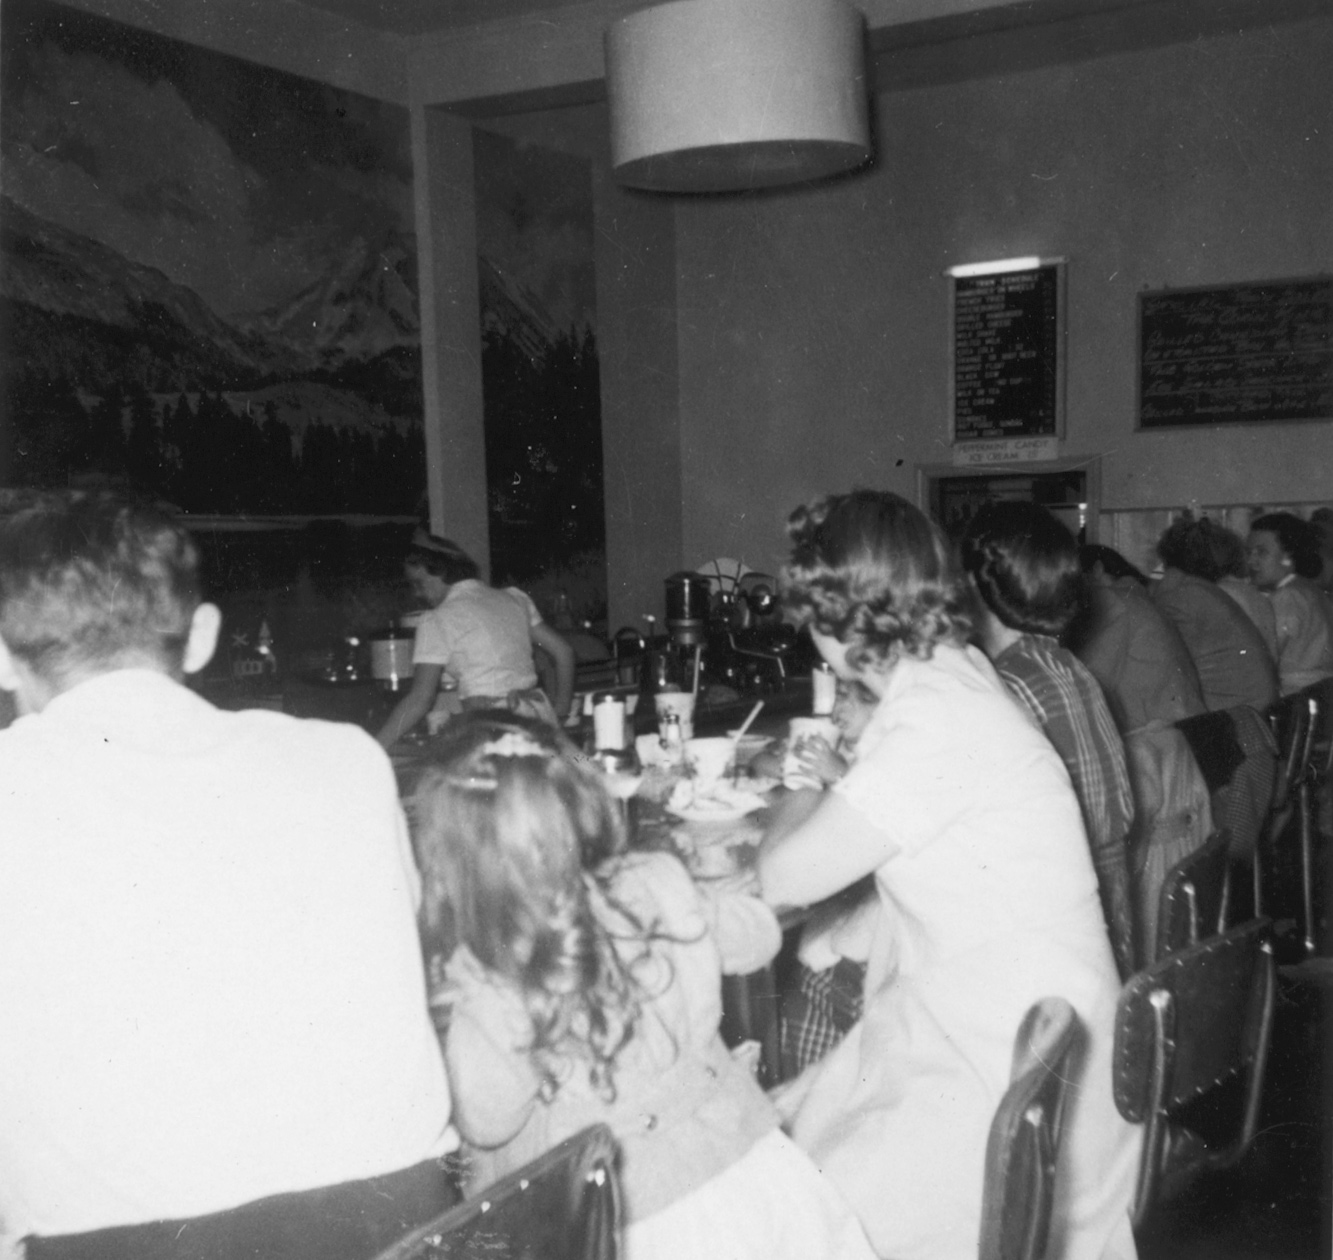 Polaroid of diners at the Miner Street location